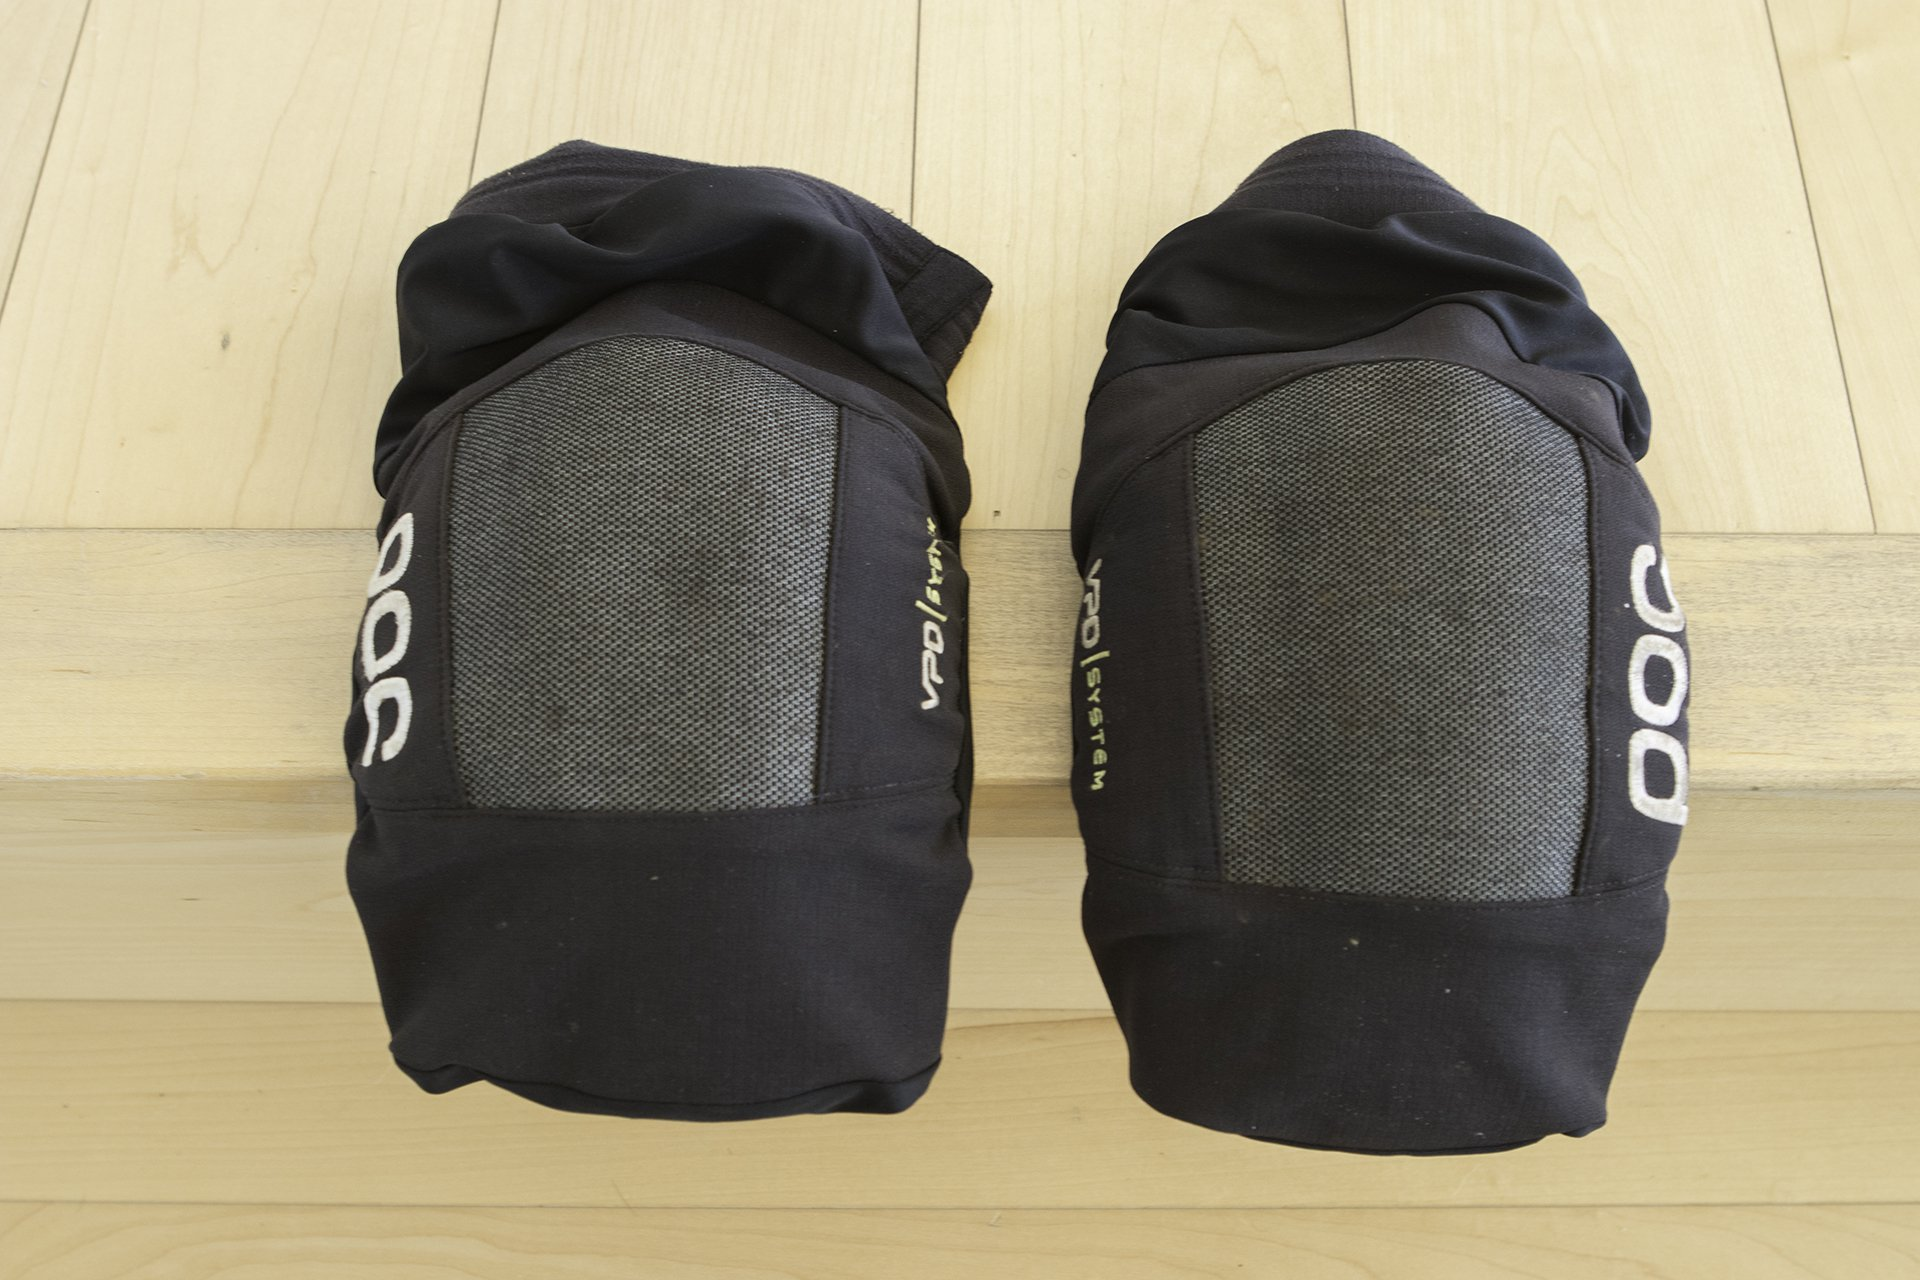 Poc Vpd Joint System Knee Pads Reviewed Accessories 3 Knees1